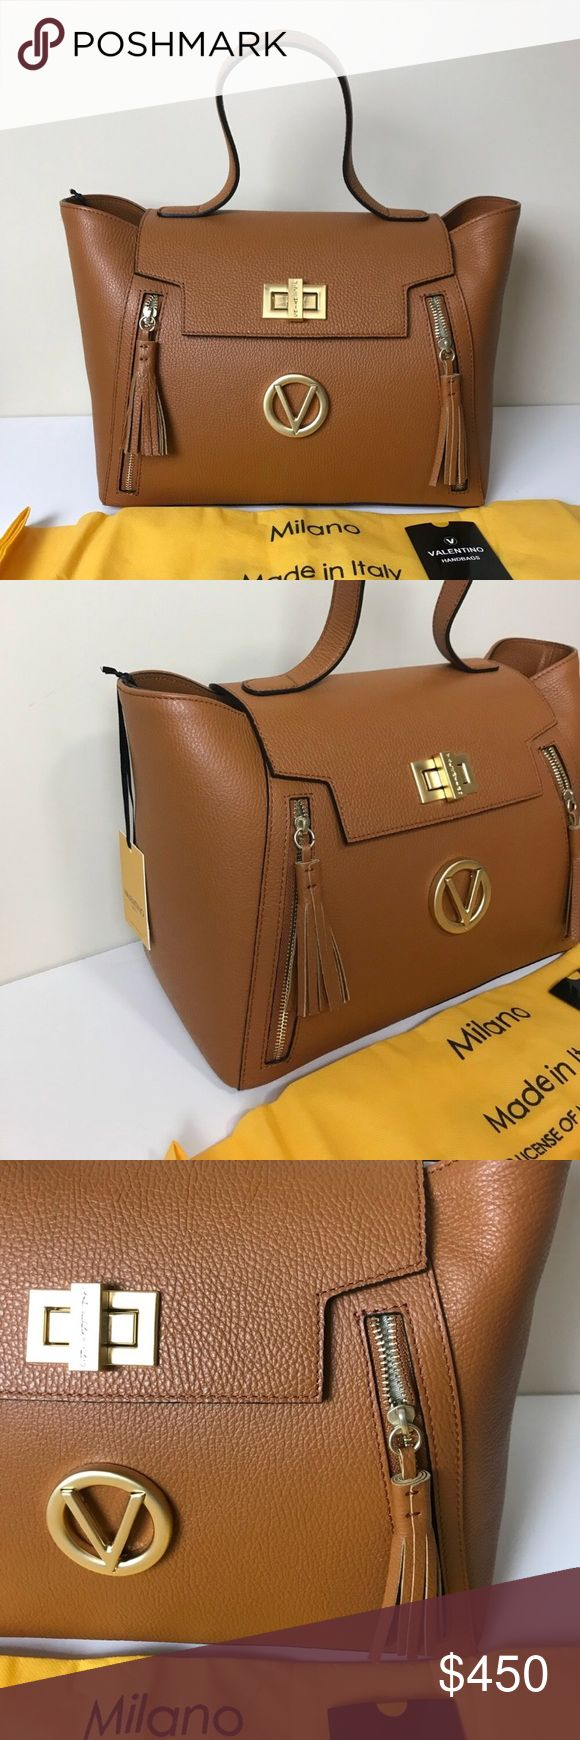 NWT Valentino Camilla tote brown Valentino Camilla tote handbag purse. Brand new no flaws. Authentic with paperwork,dustbag and crossbody strap.  Valentino by Mario Valentino Mario Valentino Bags Totes #valentinopurse